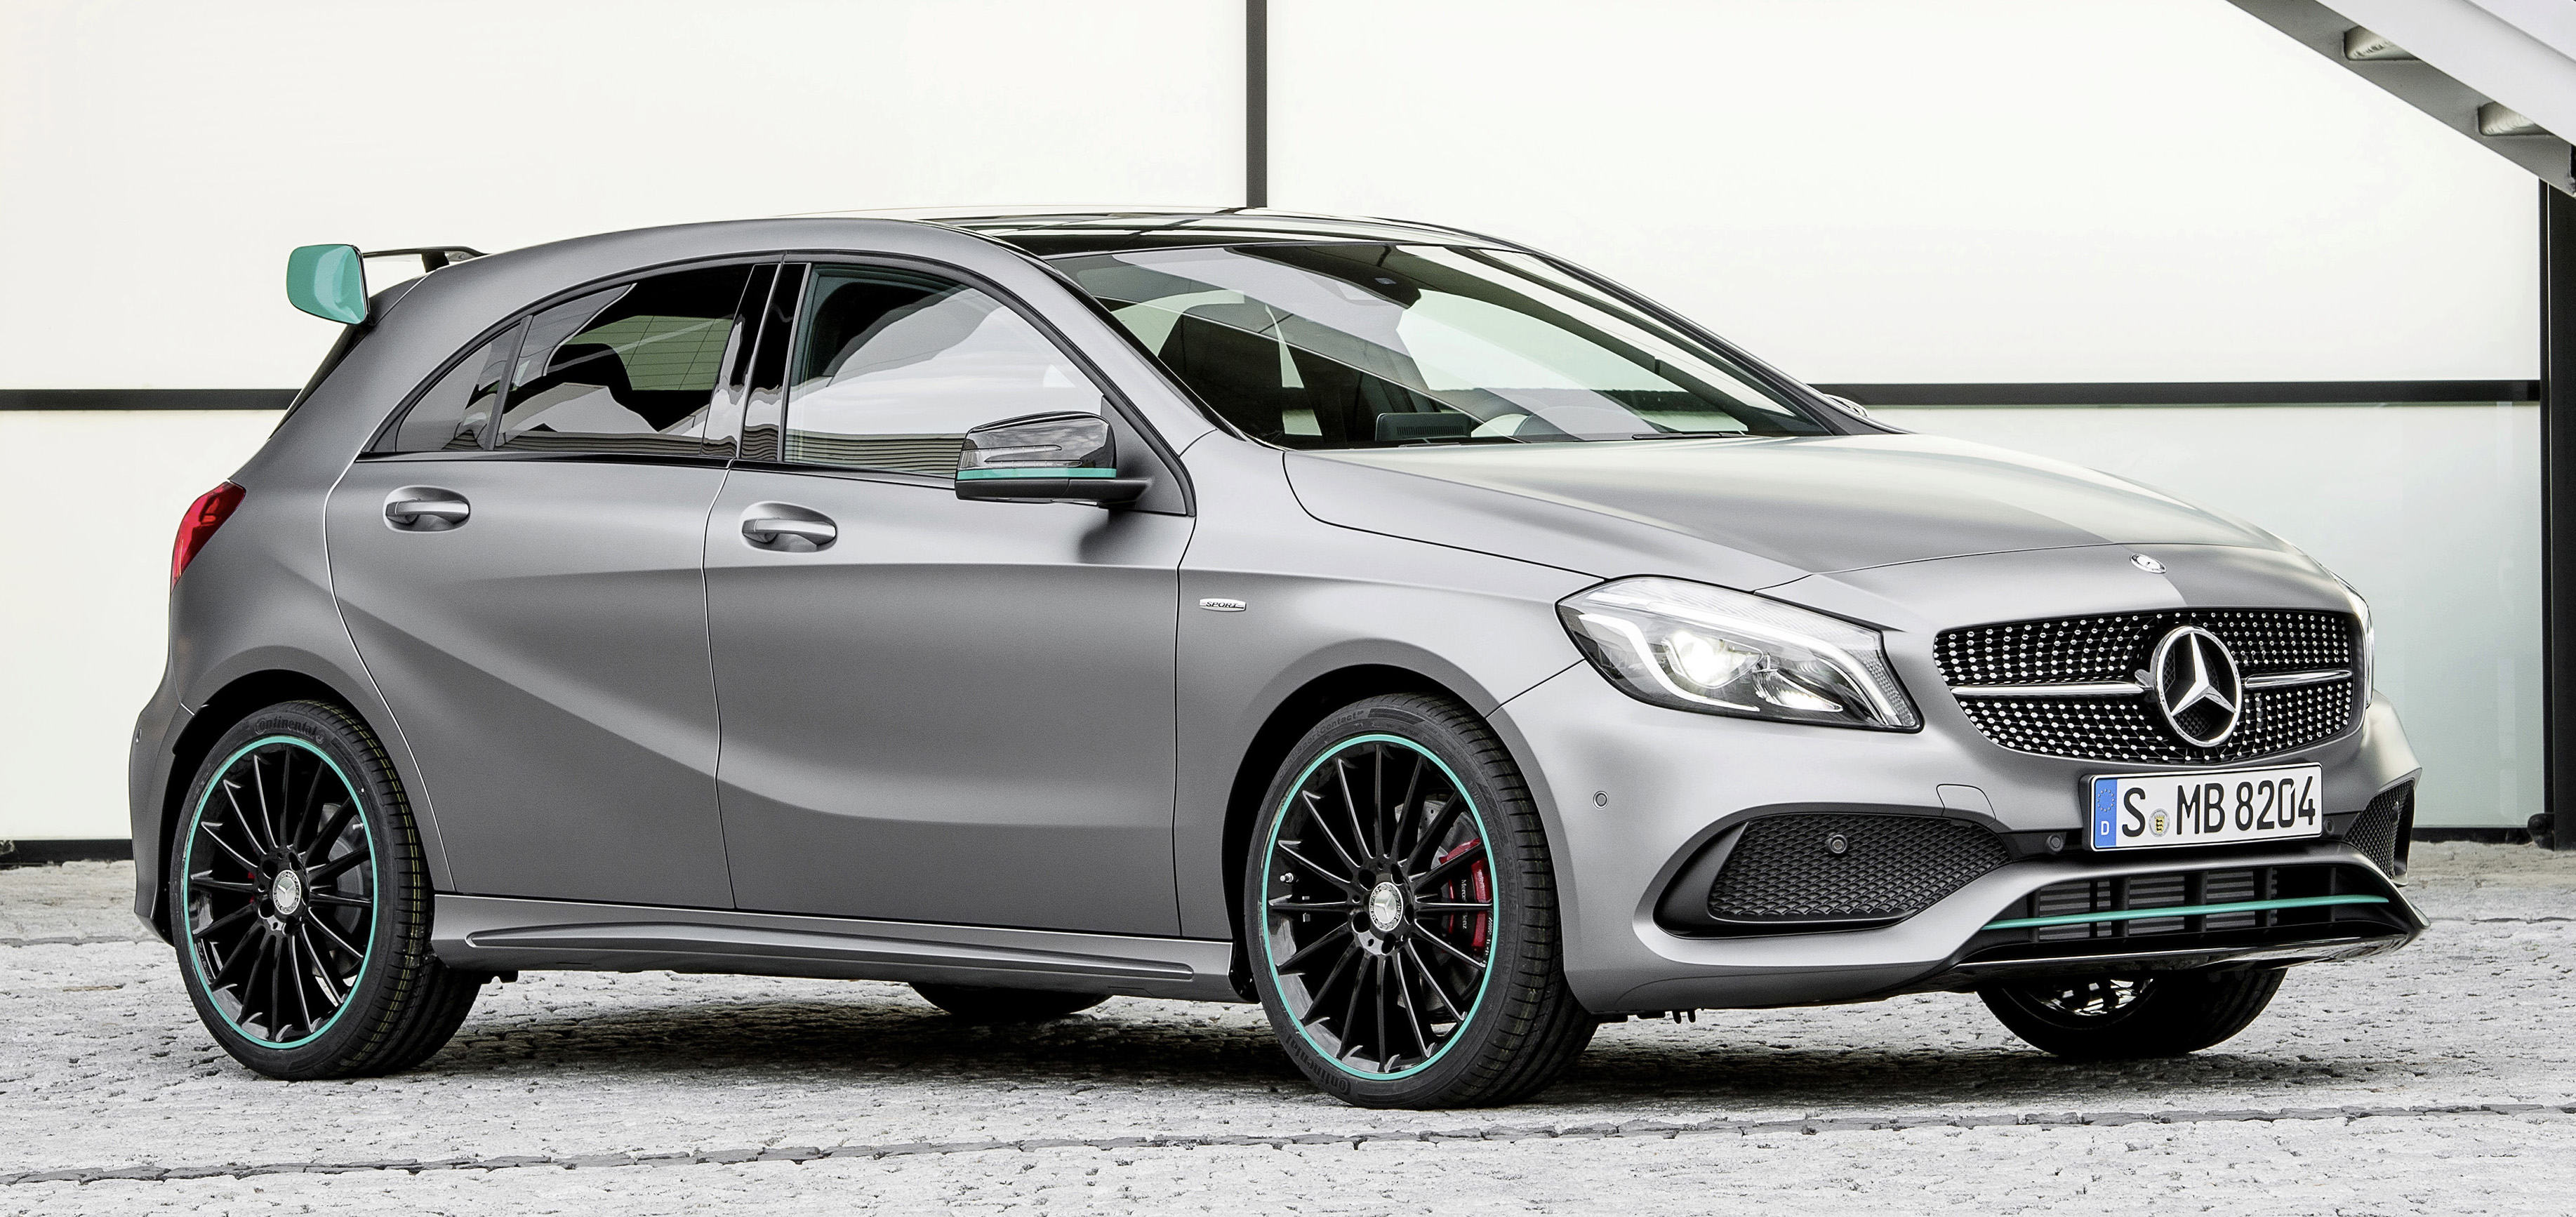 Mercedes benz a250 motorsport edition rm257k for Mercedes benz motorsport